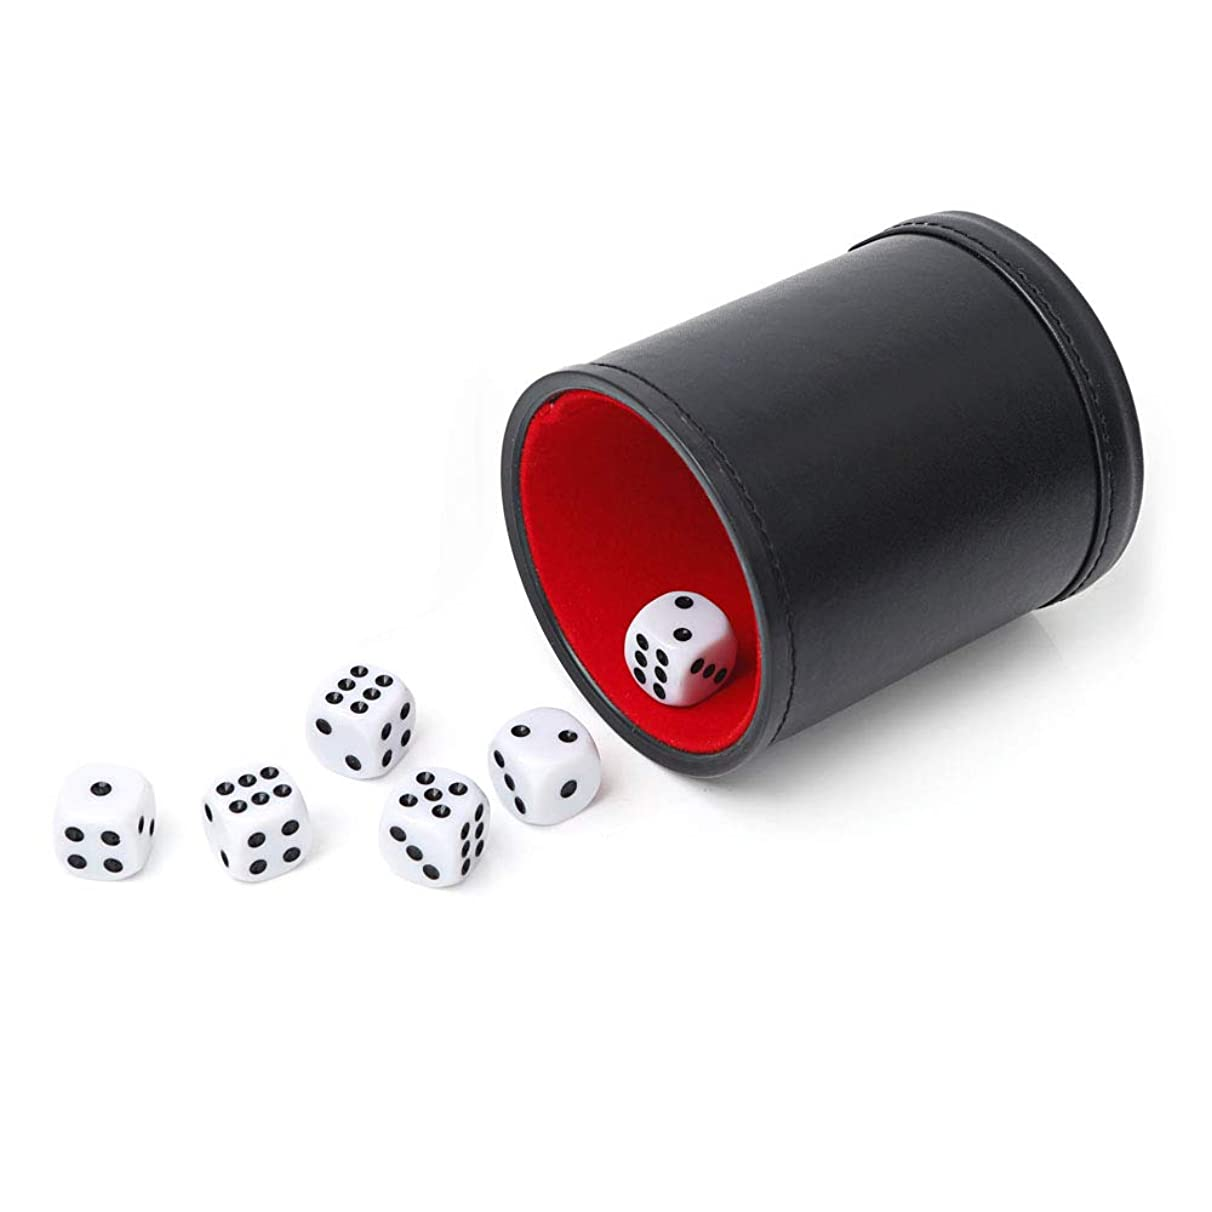 Tuzama Professional PU Leather Dice Cup, Felt Lined, with 6 Dices for Yahtzee Bar Party Dice Games